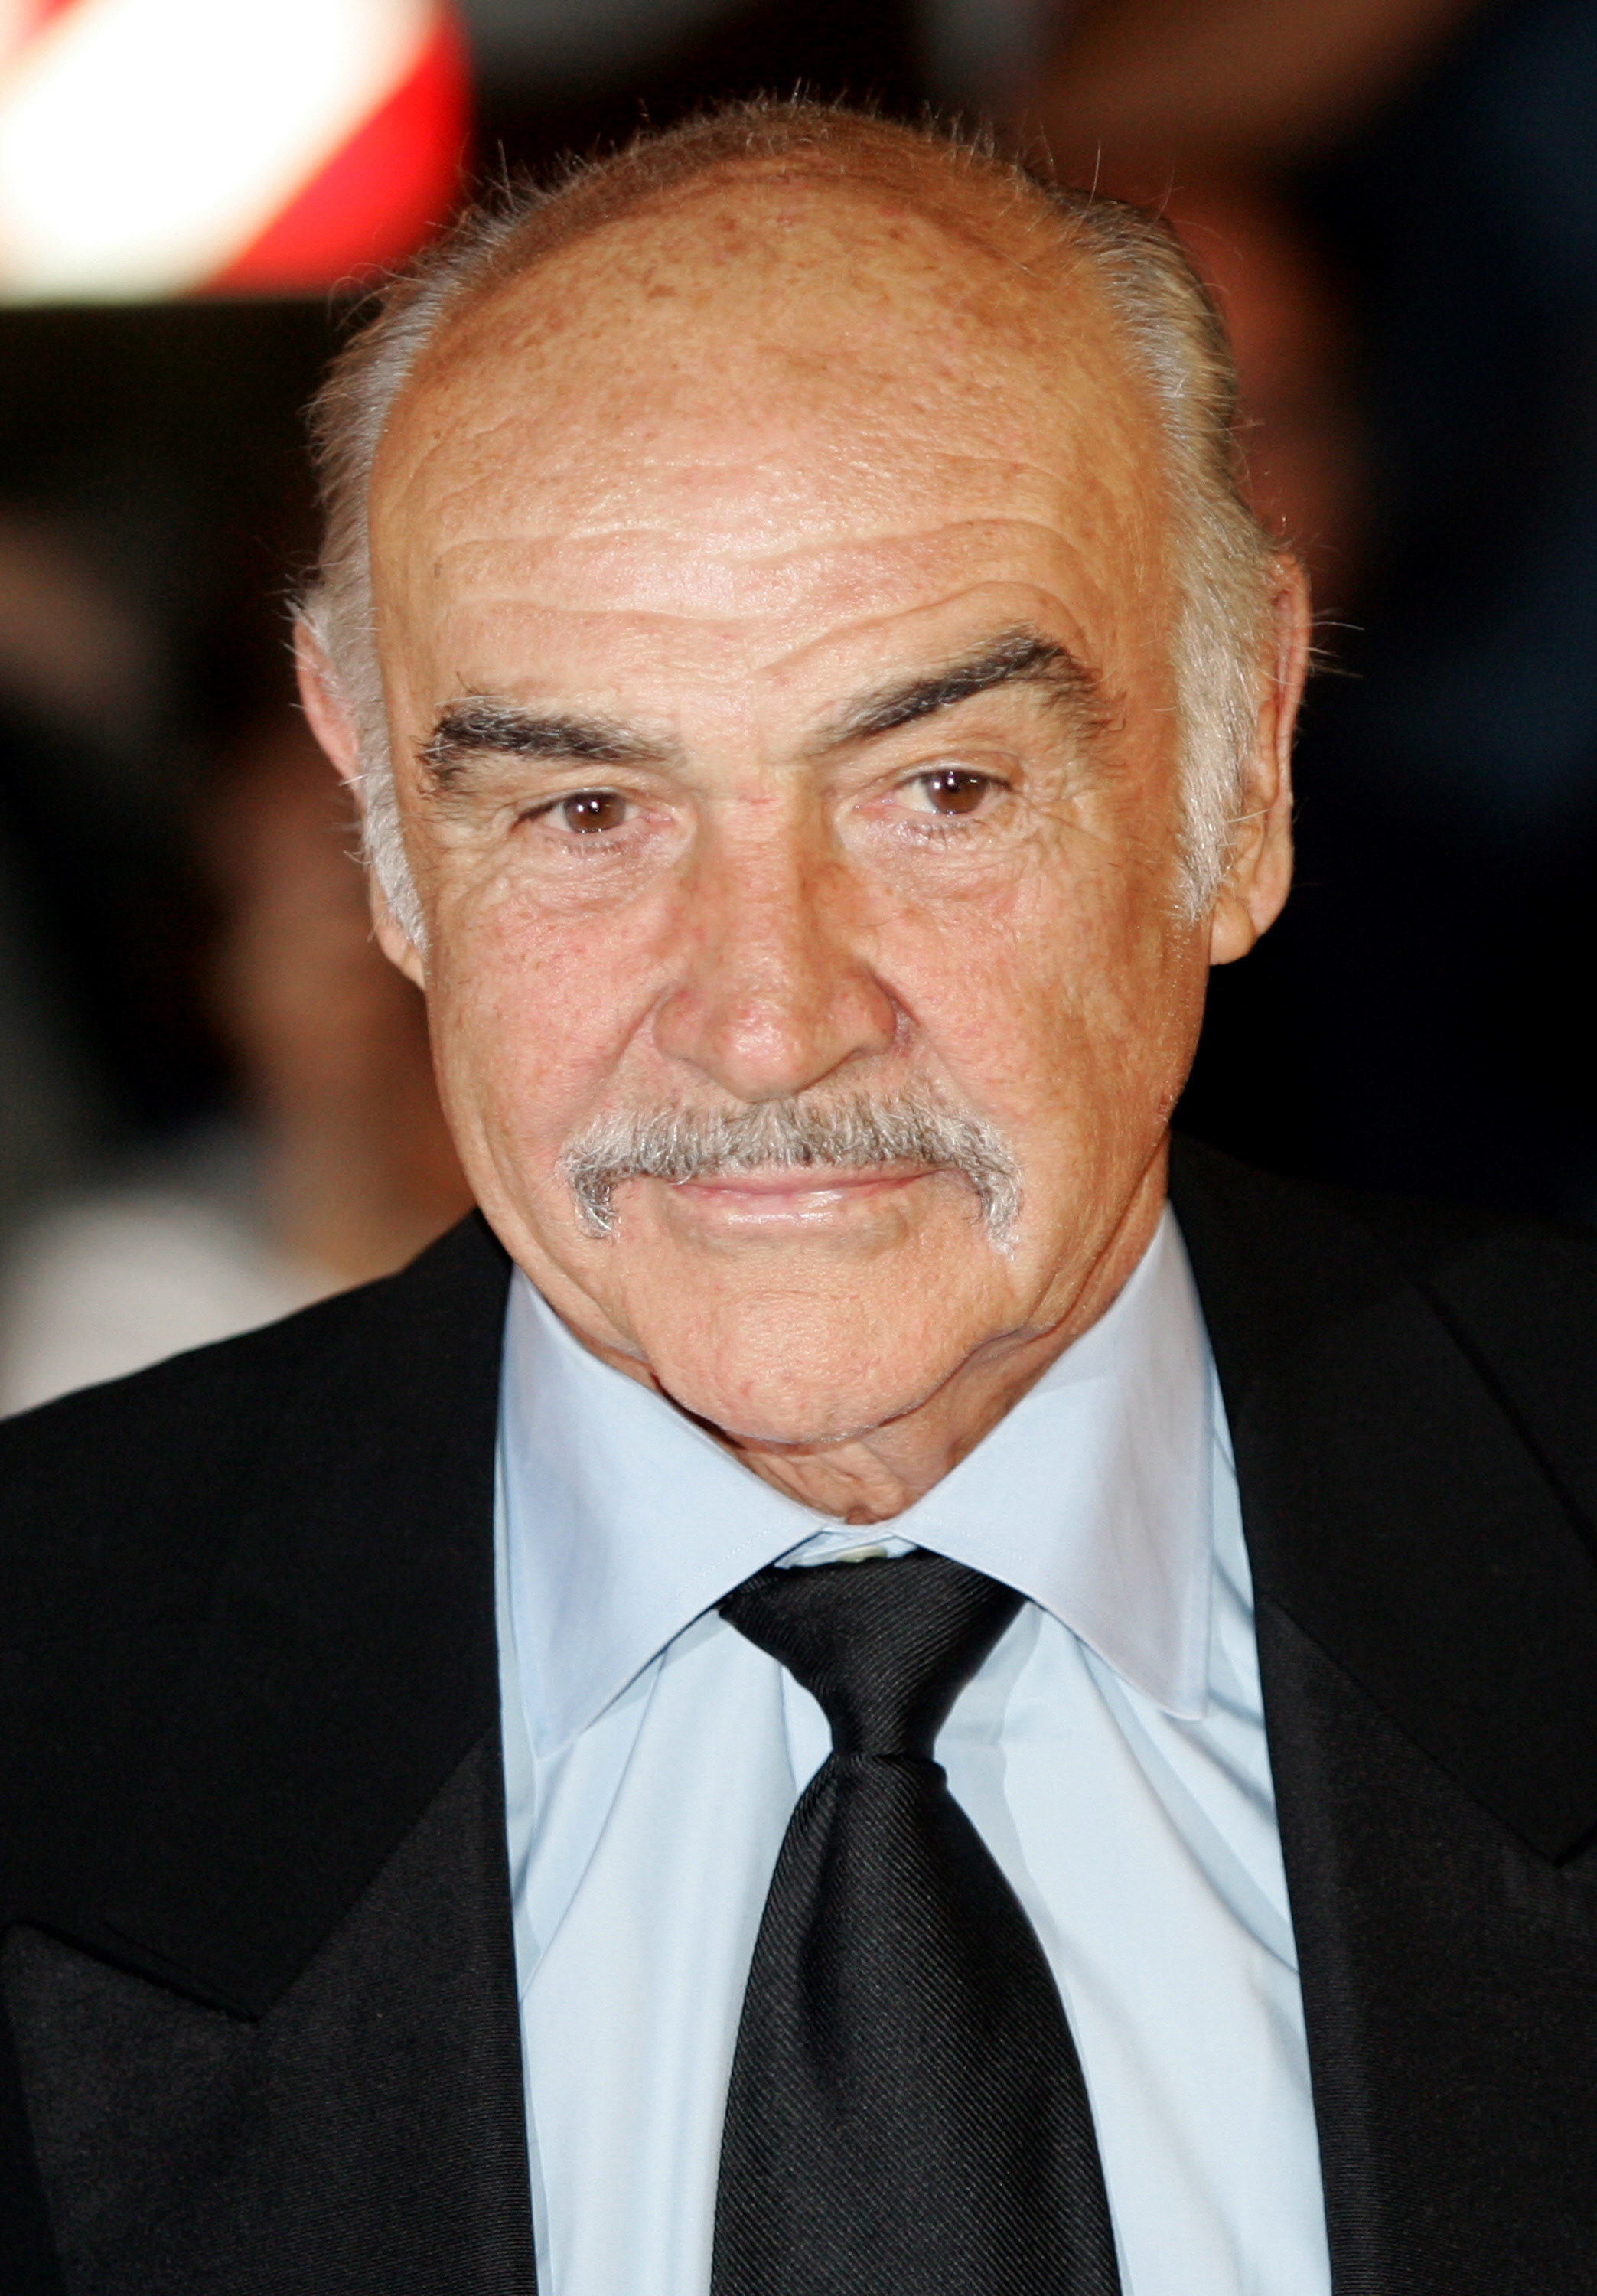 sean connery in a suit